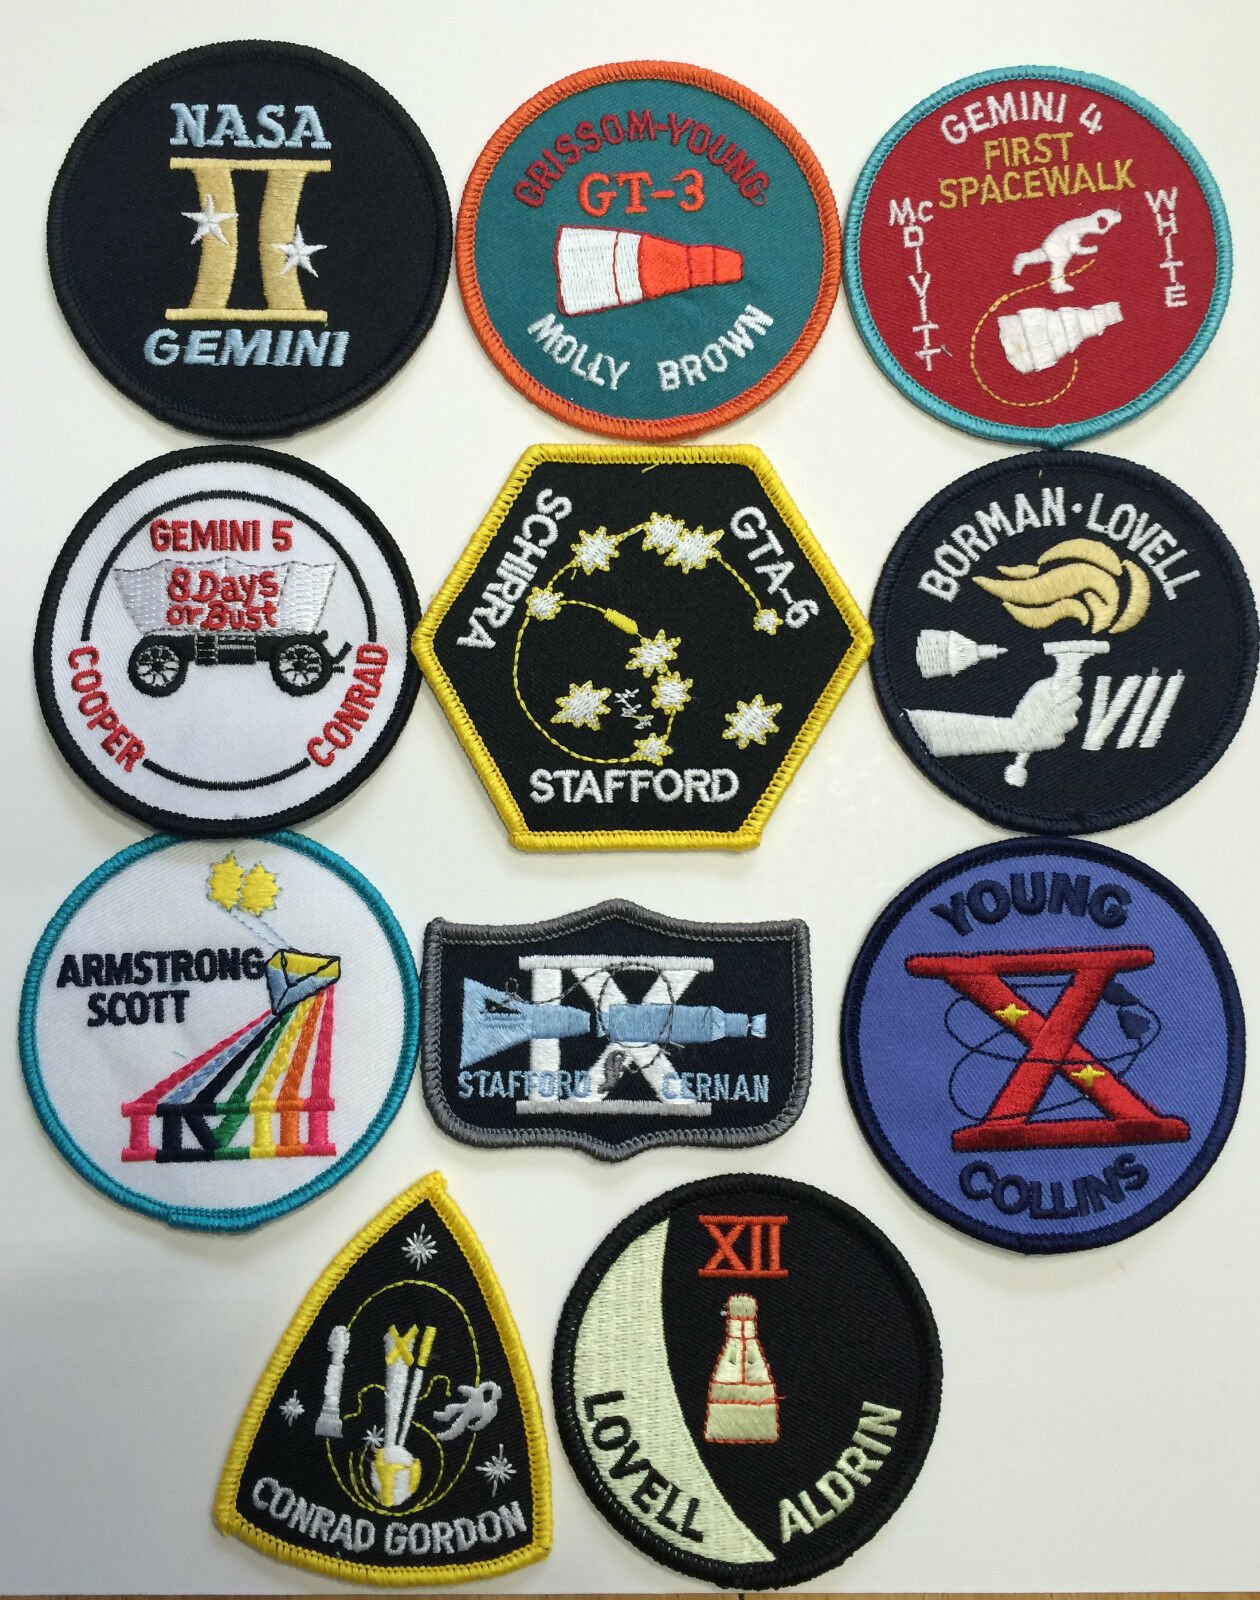 official nasa patches - photo #32